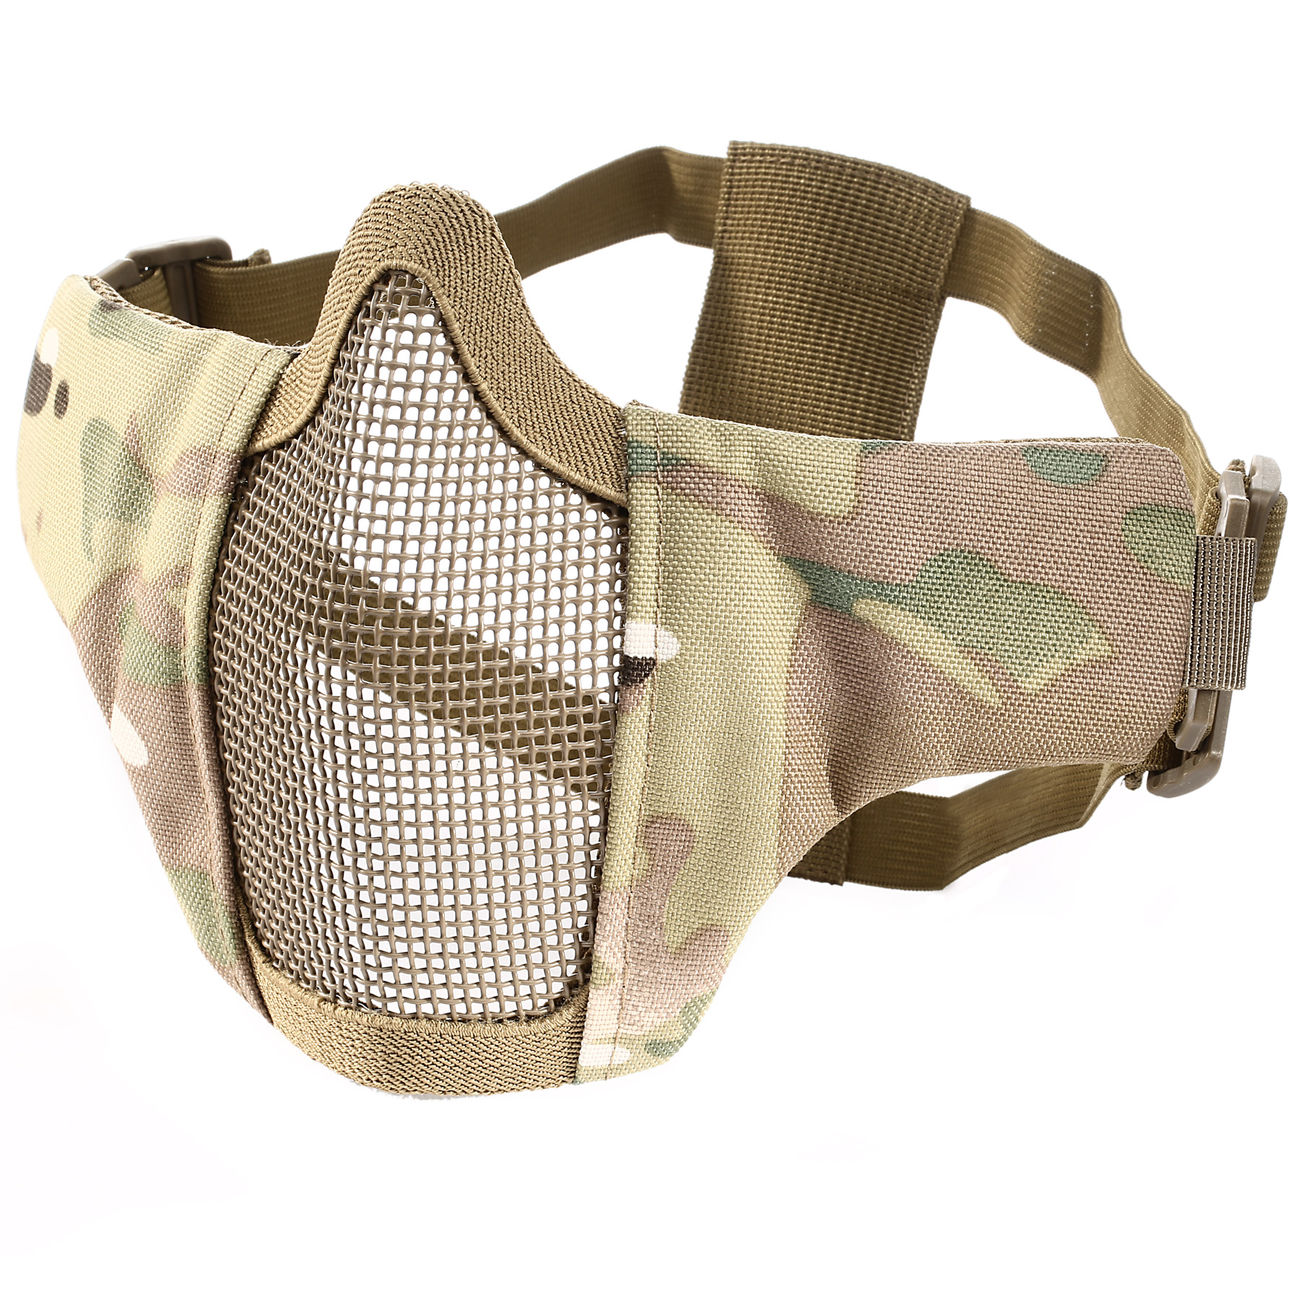 WoSport WST Airsoft Gittermaske Lower Face MC-Camo 1